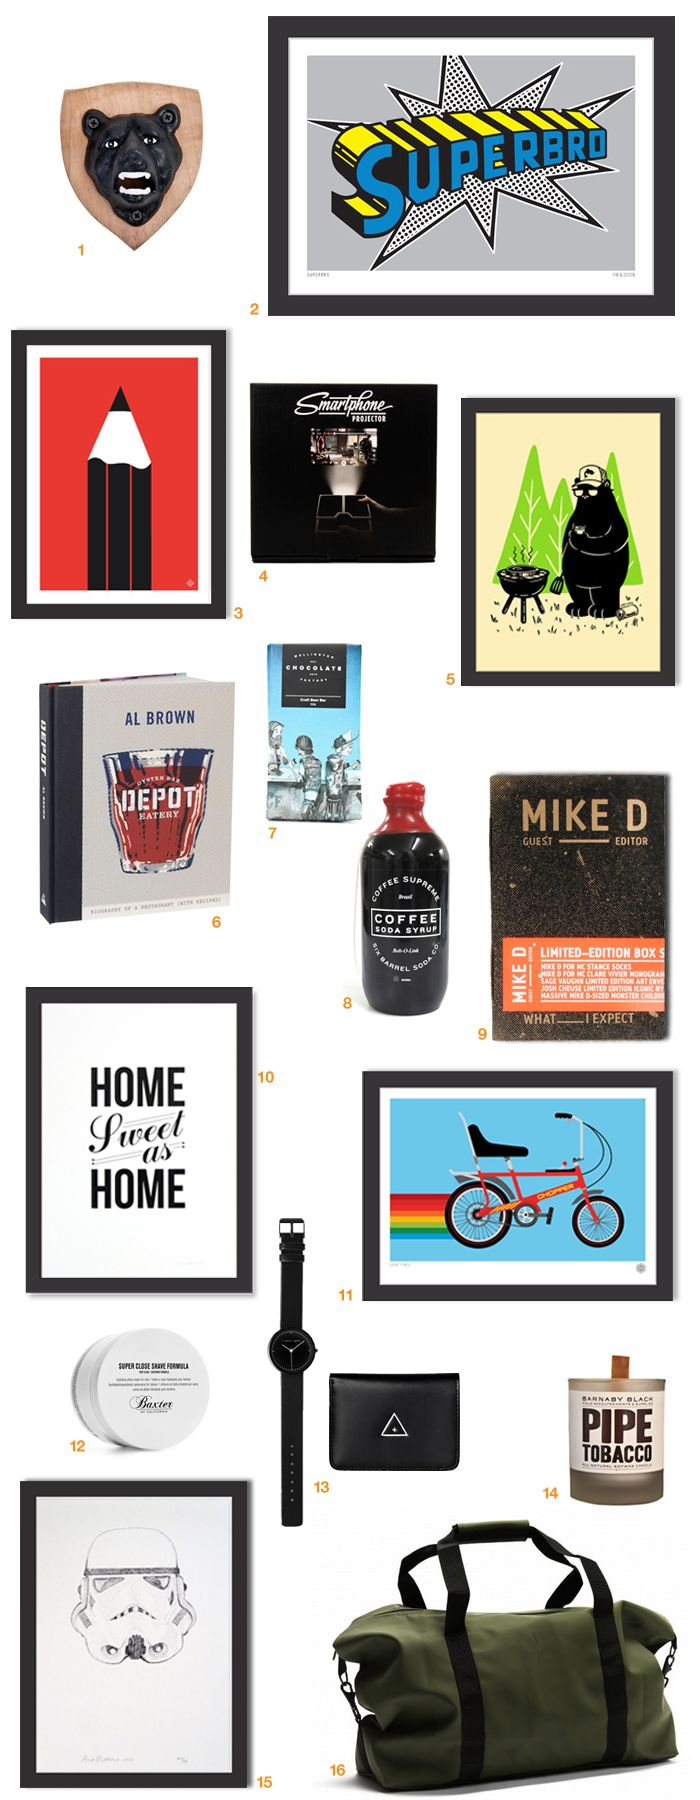 On our blog - Gift Guides | Awesome gifts for Guys: http://nzartprints.co.nz/2014/11/ho-ho-ho-gifts-for-guys/